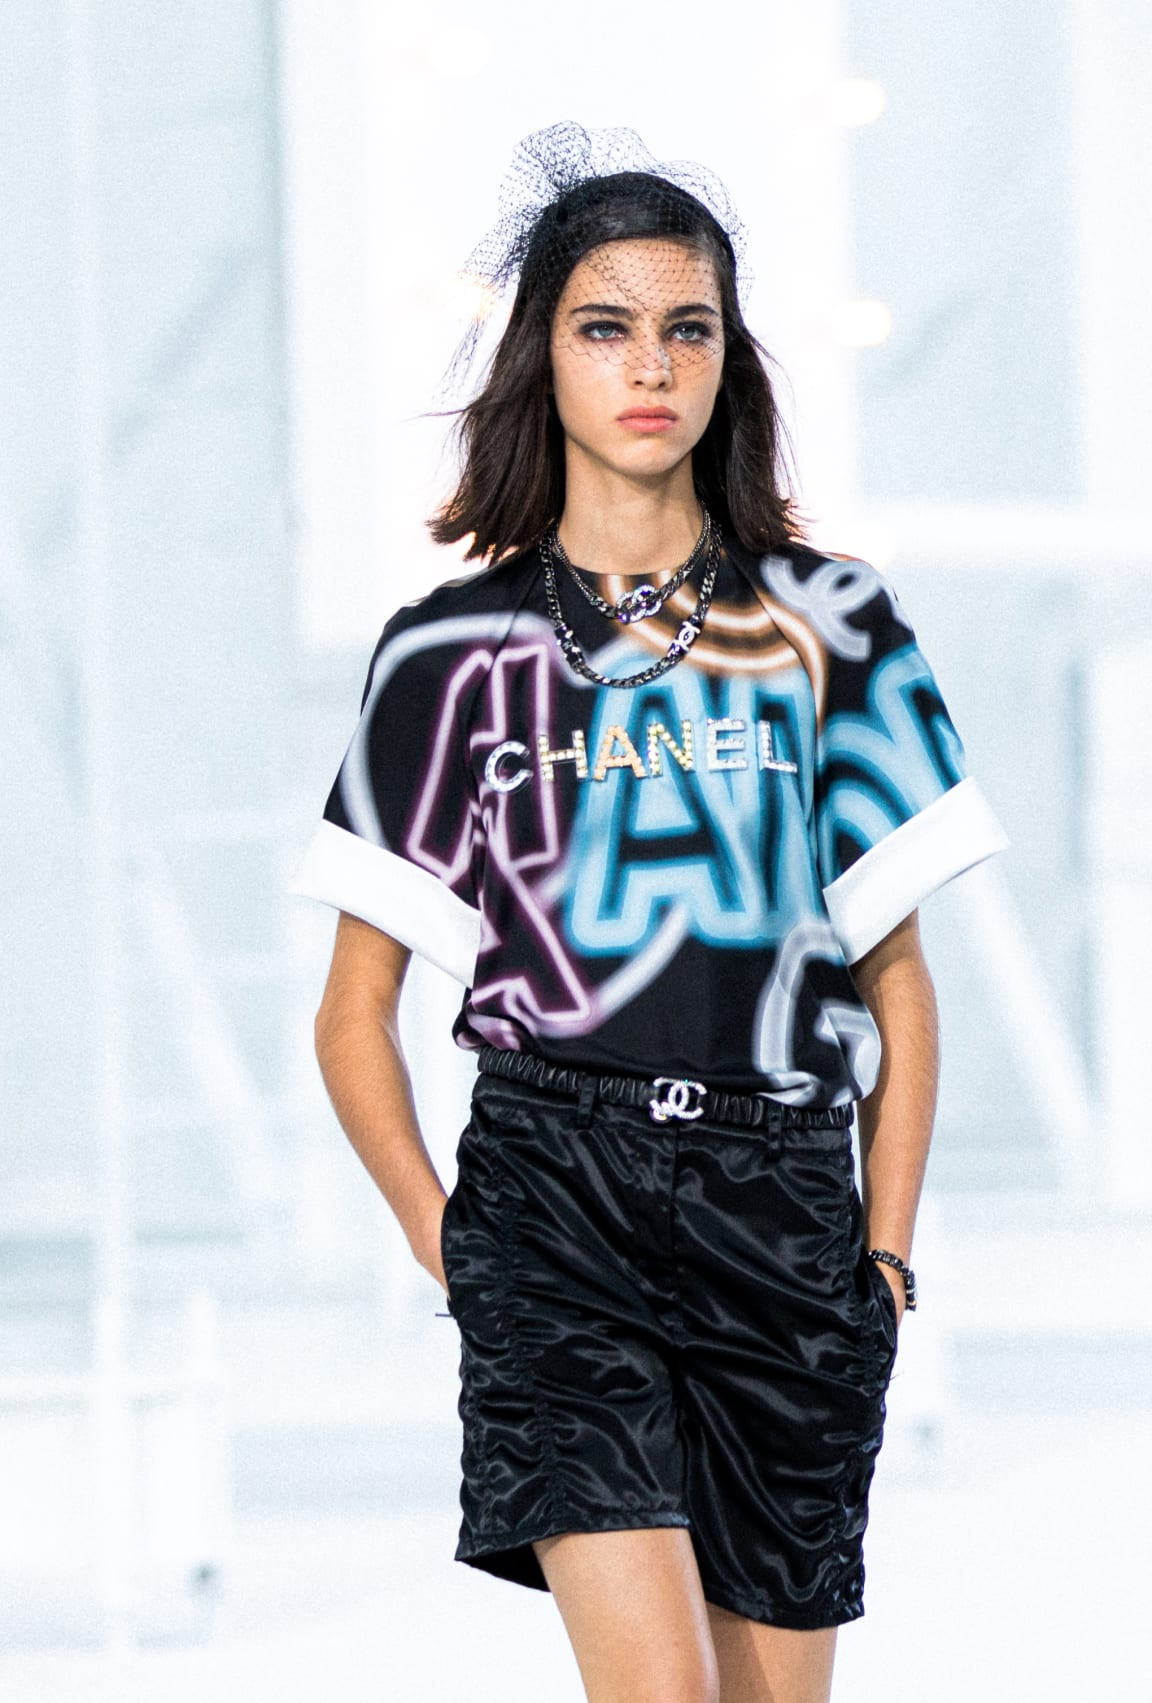 zoom - Image 1 - Look  32